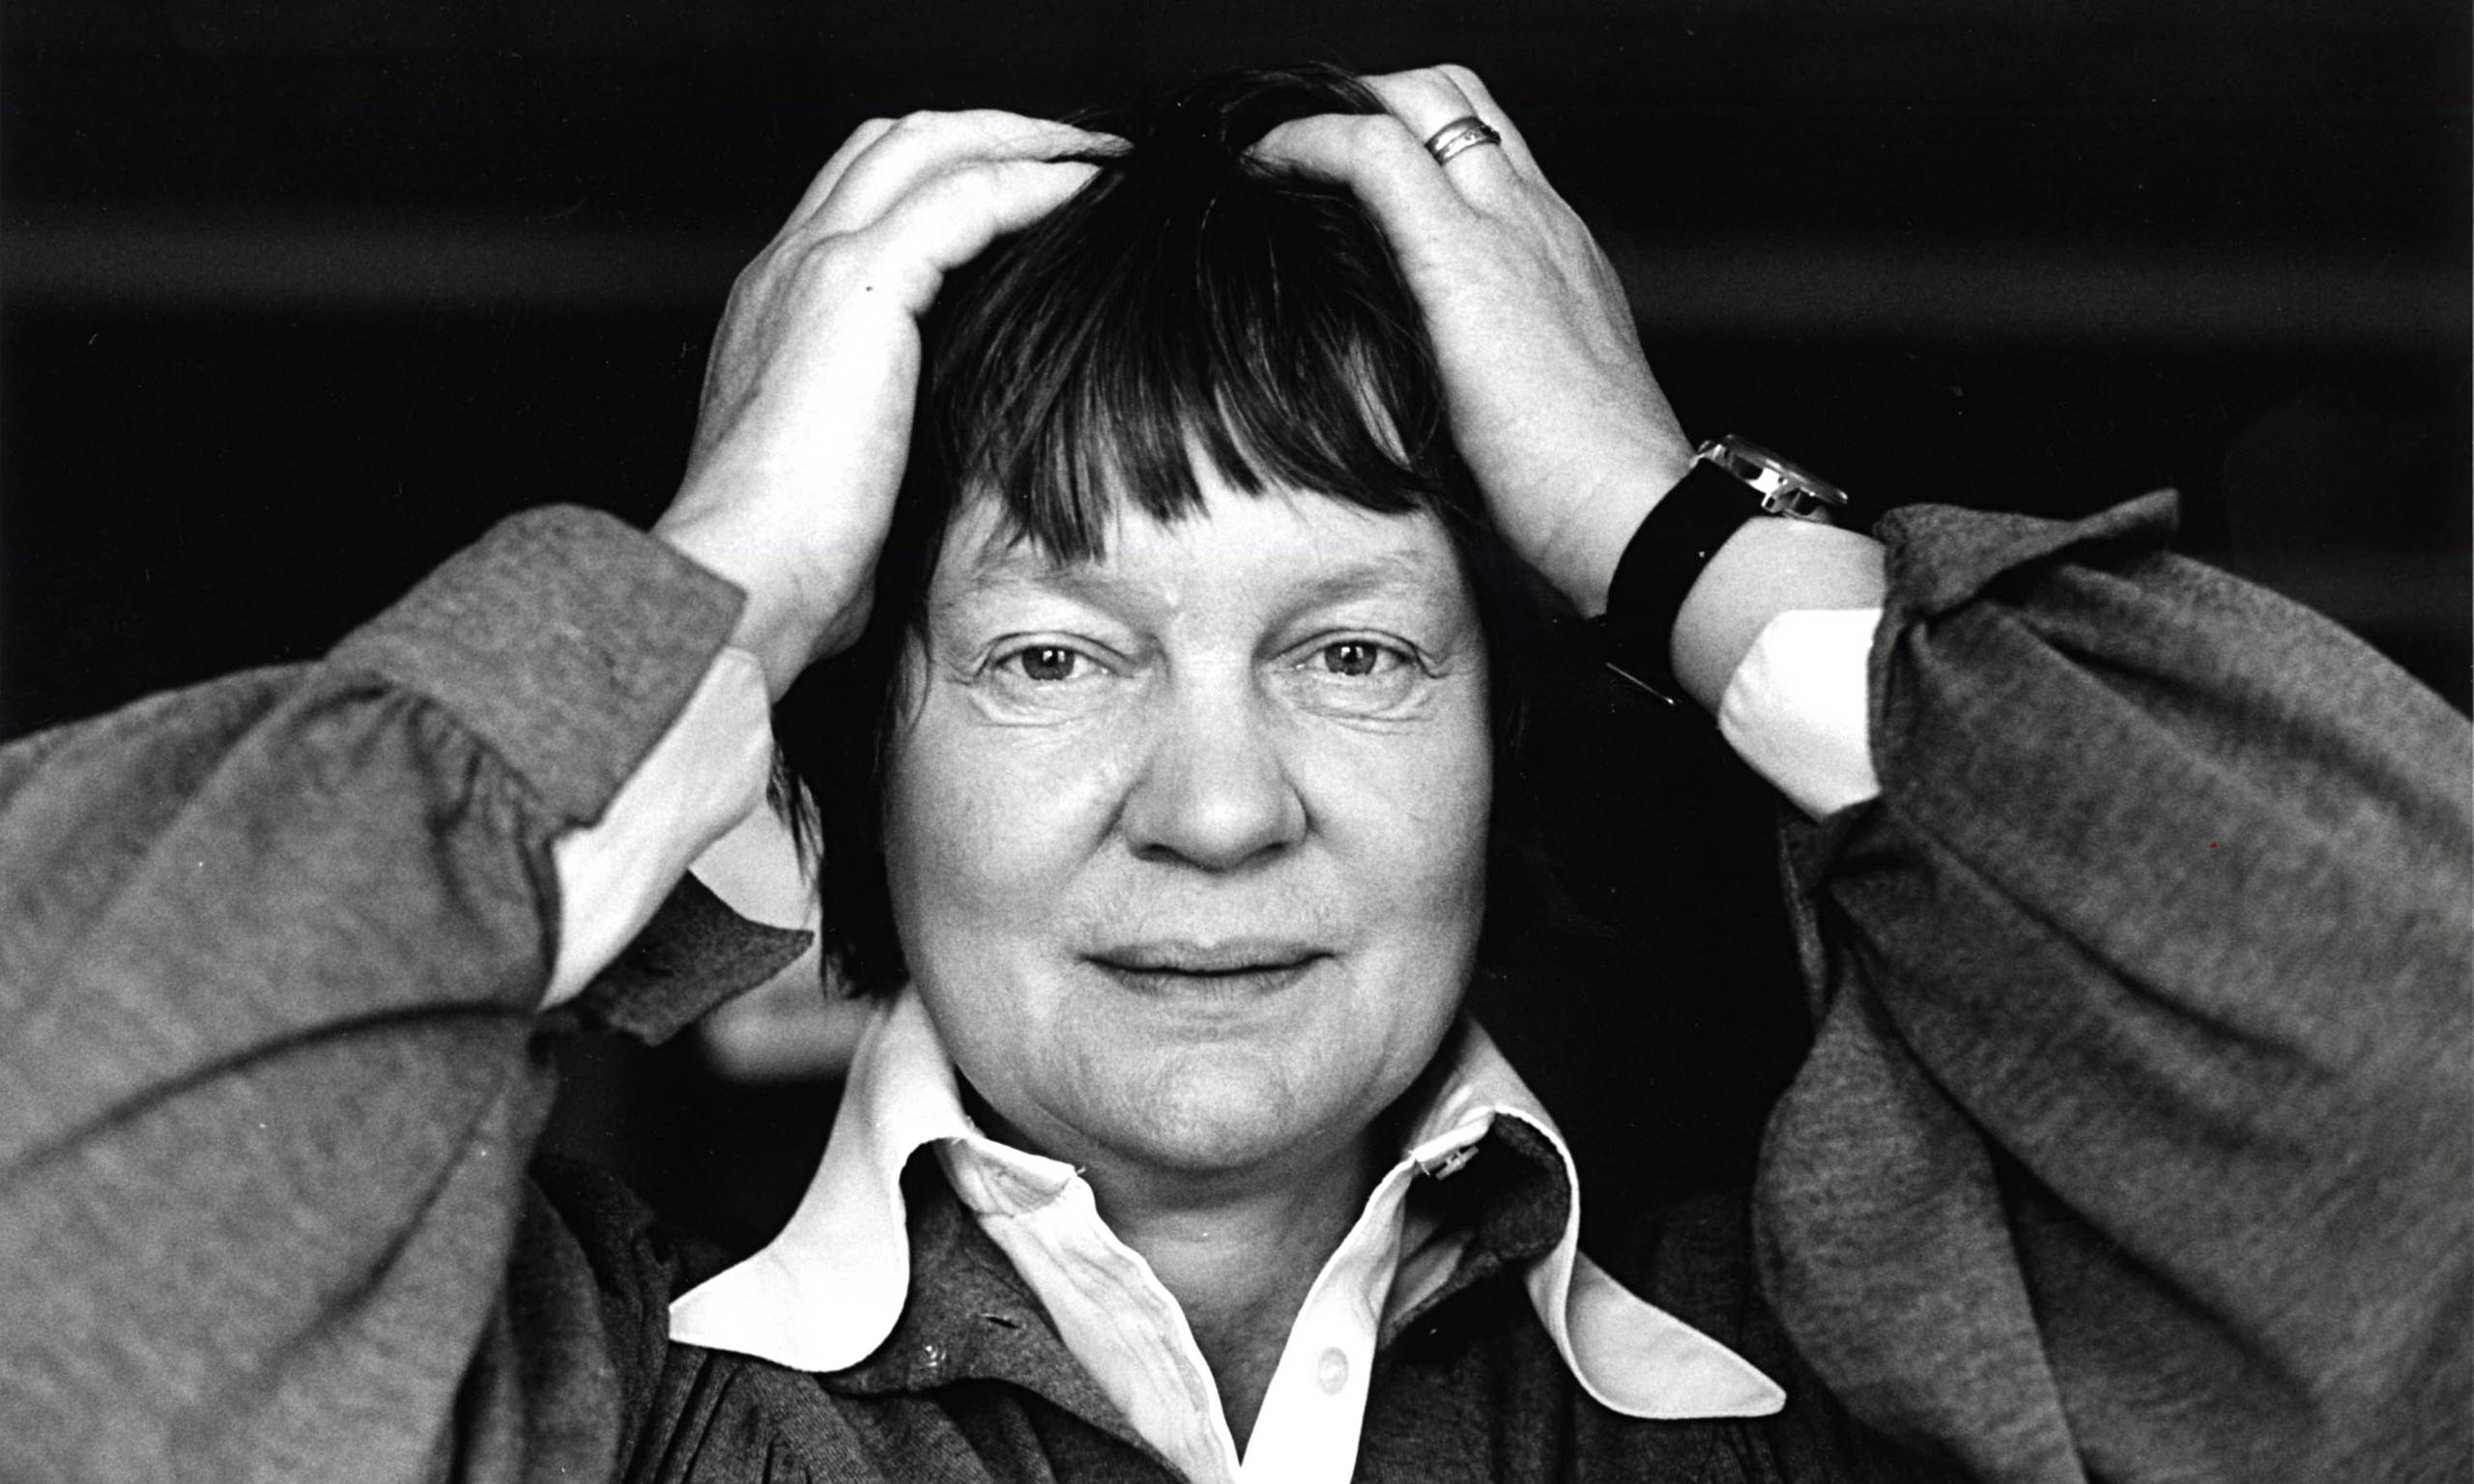 iris murdoch Iris murdoch was a national institution her name has entered the language  in adjectival form, as have those of proust, kafka and pinter.